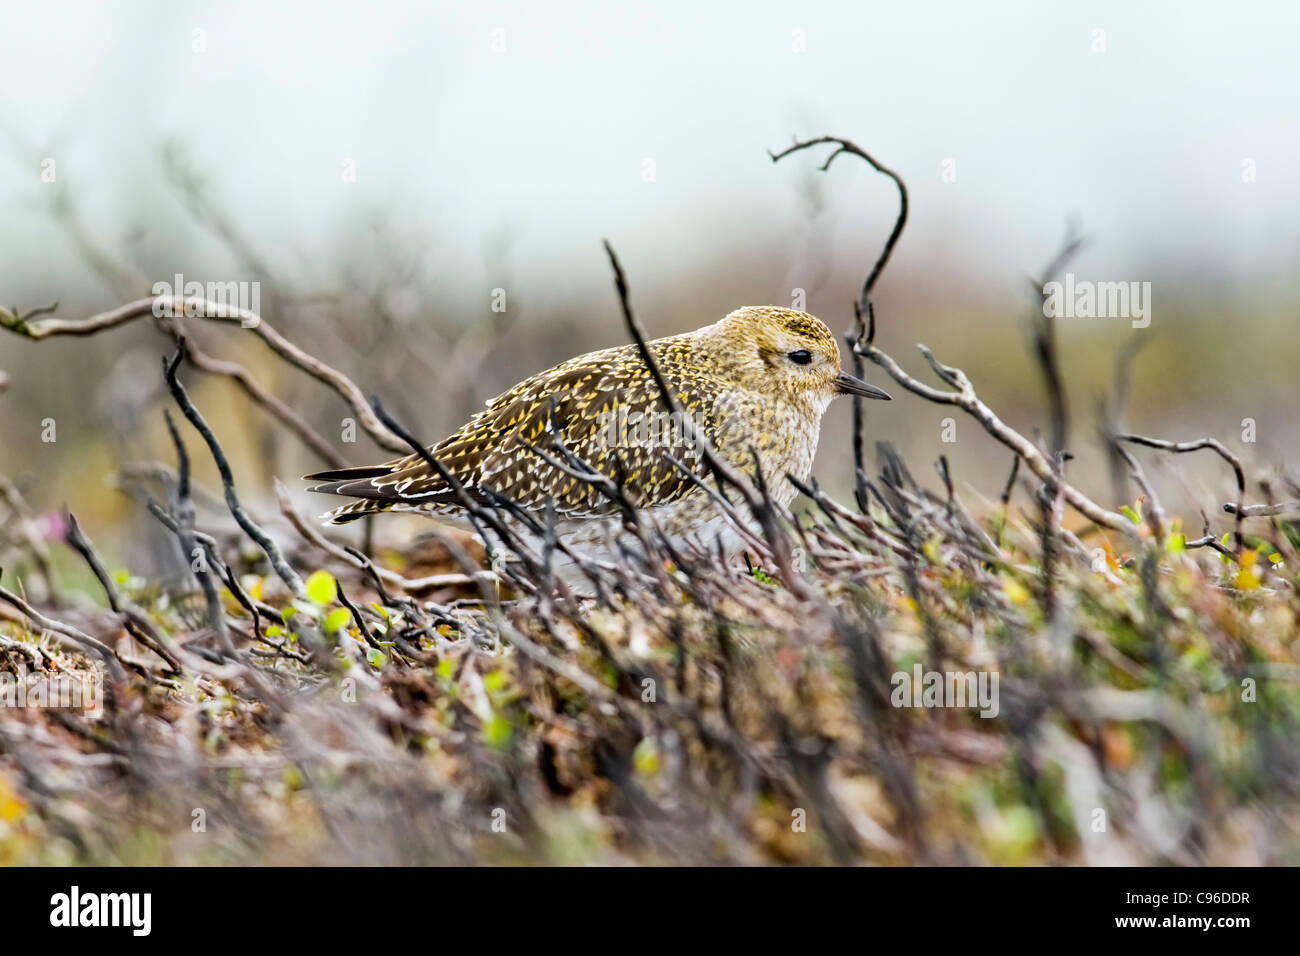 Golden Plover resting amongst burnt heather stems on moorland - Stock Image